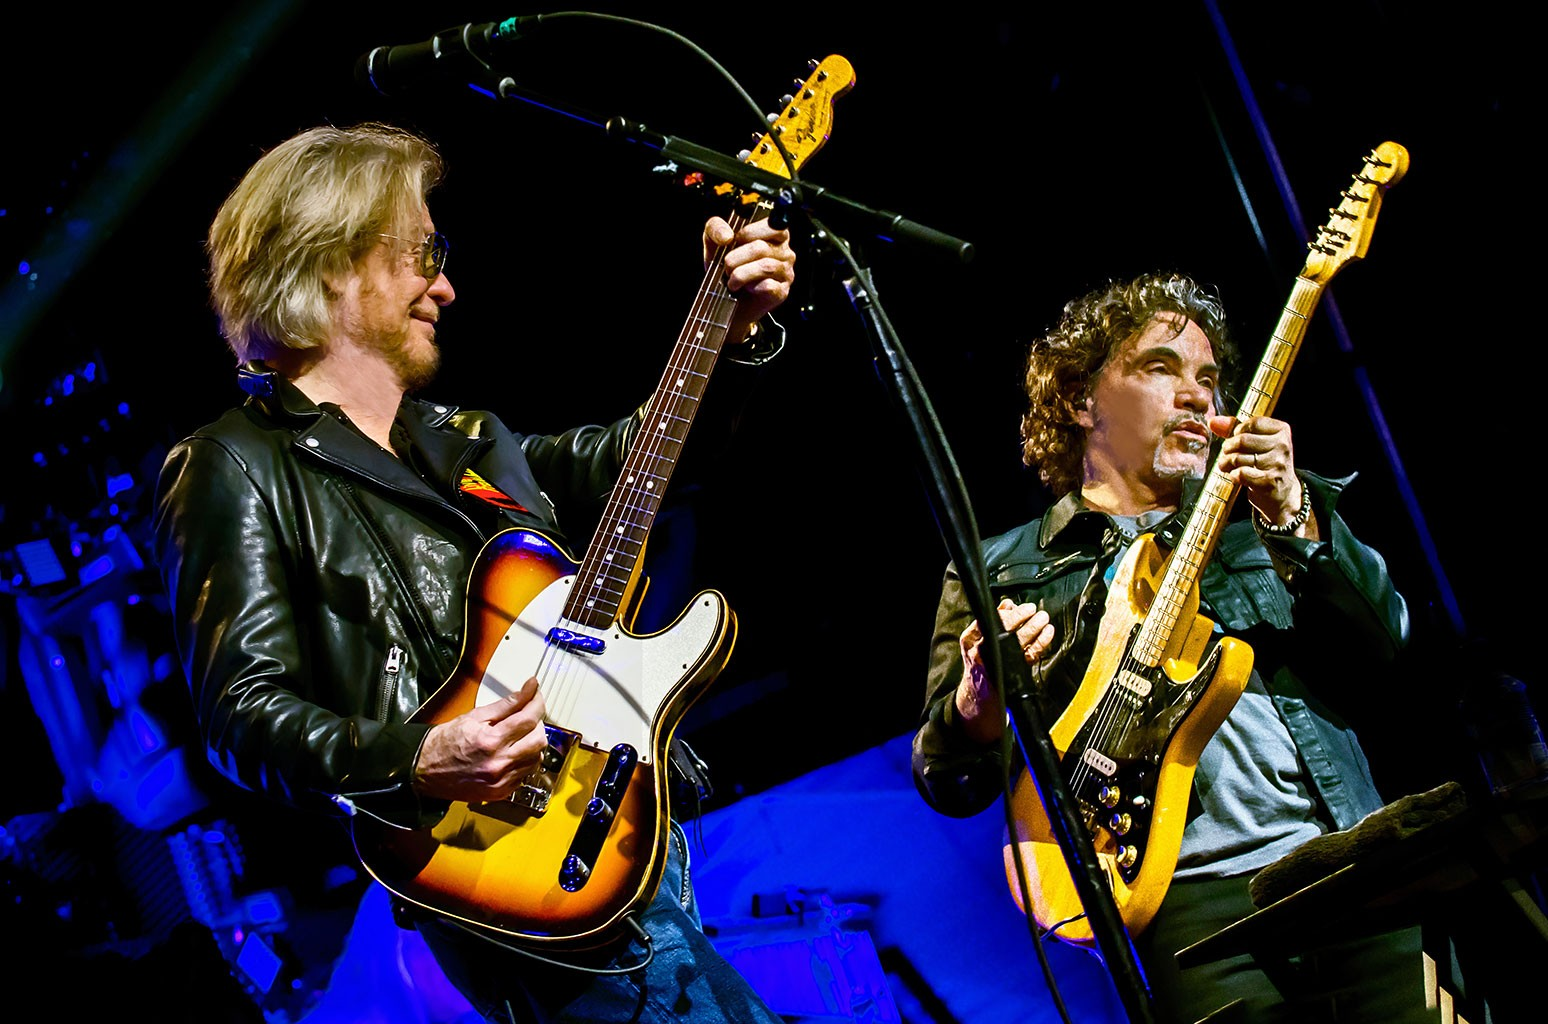 Hall & Oates on 2021 Tour: 'Excitement Is Too Easy A Word' | Billboard